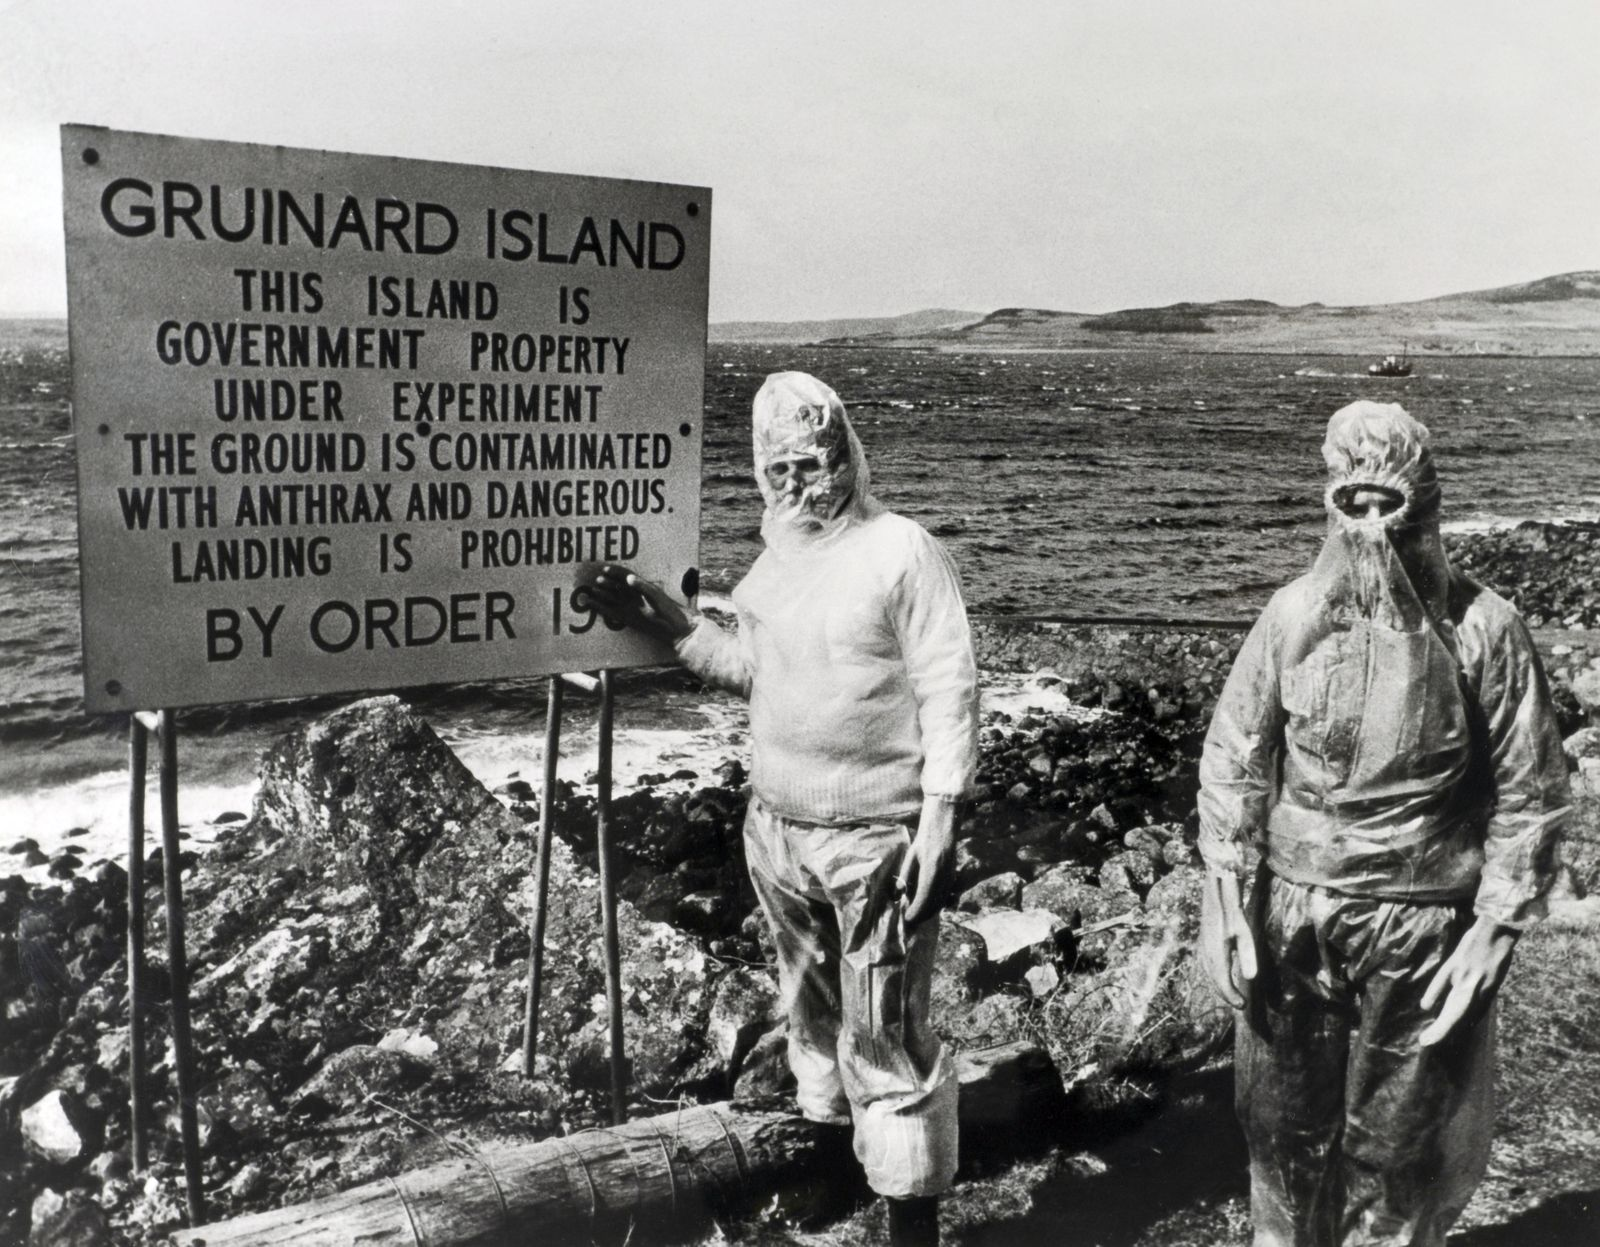 War and Conflict. World War Two. Scotland. Circa 1940's. Two men, wearing protective clothes stand by a sign on Gruinard Island. This small island off the Scottish coast has been quarantined following British Governments tests with Biological warfare agen